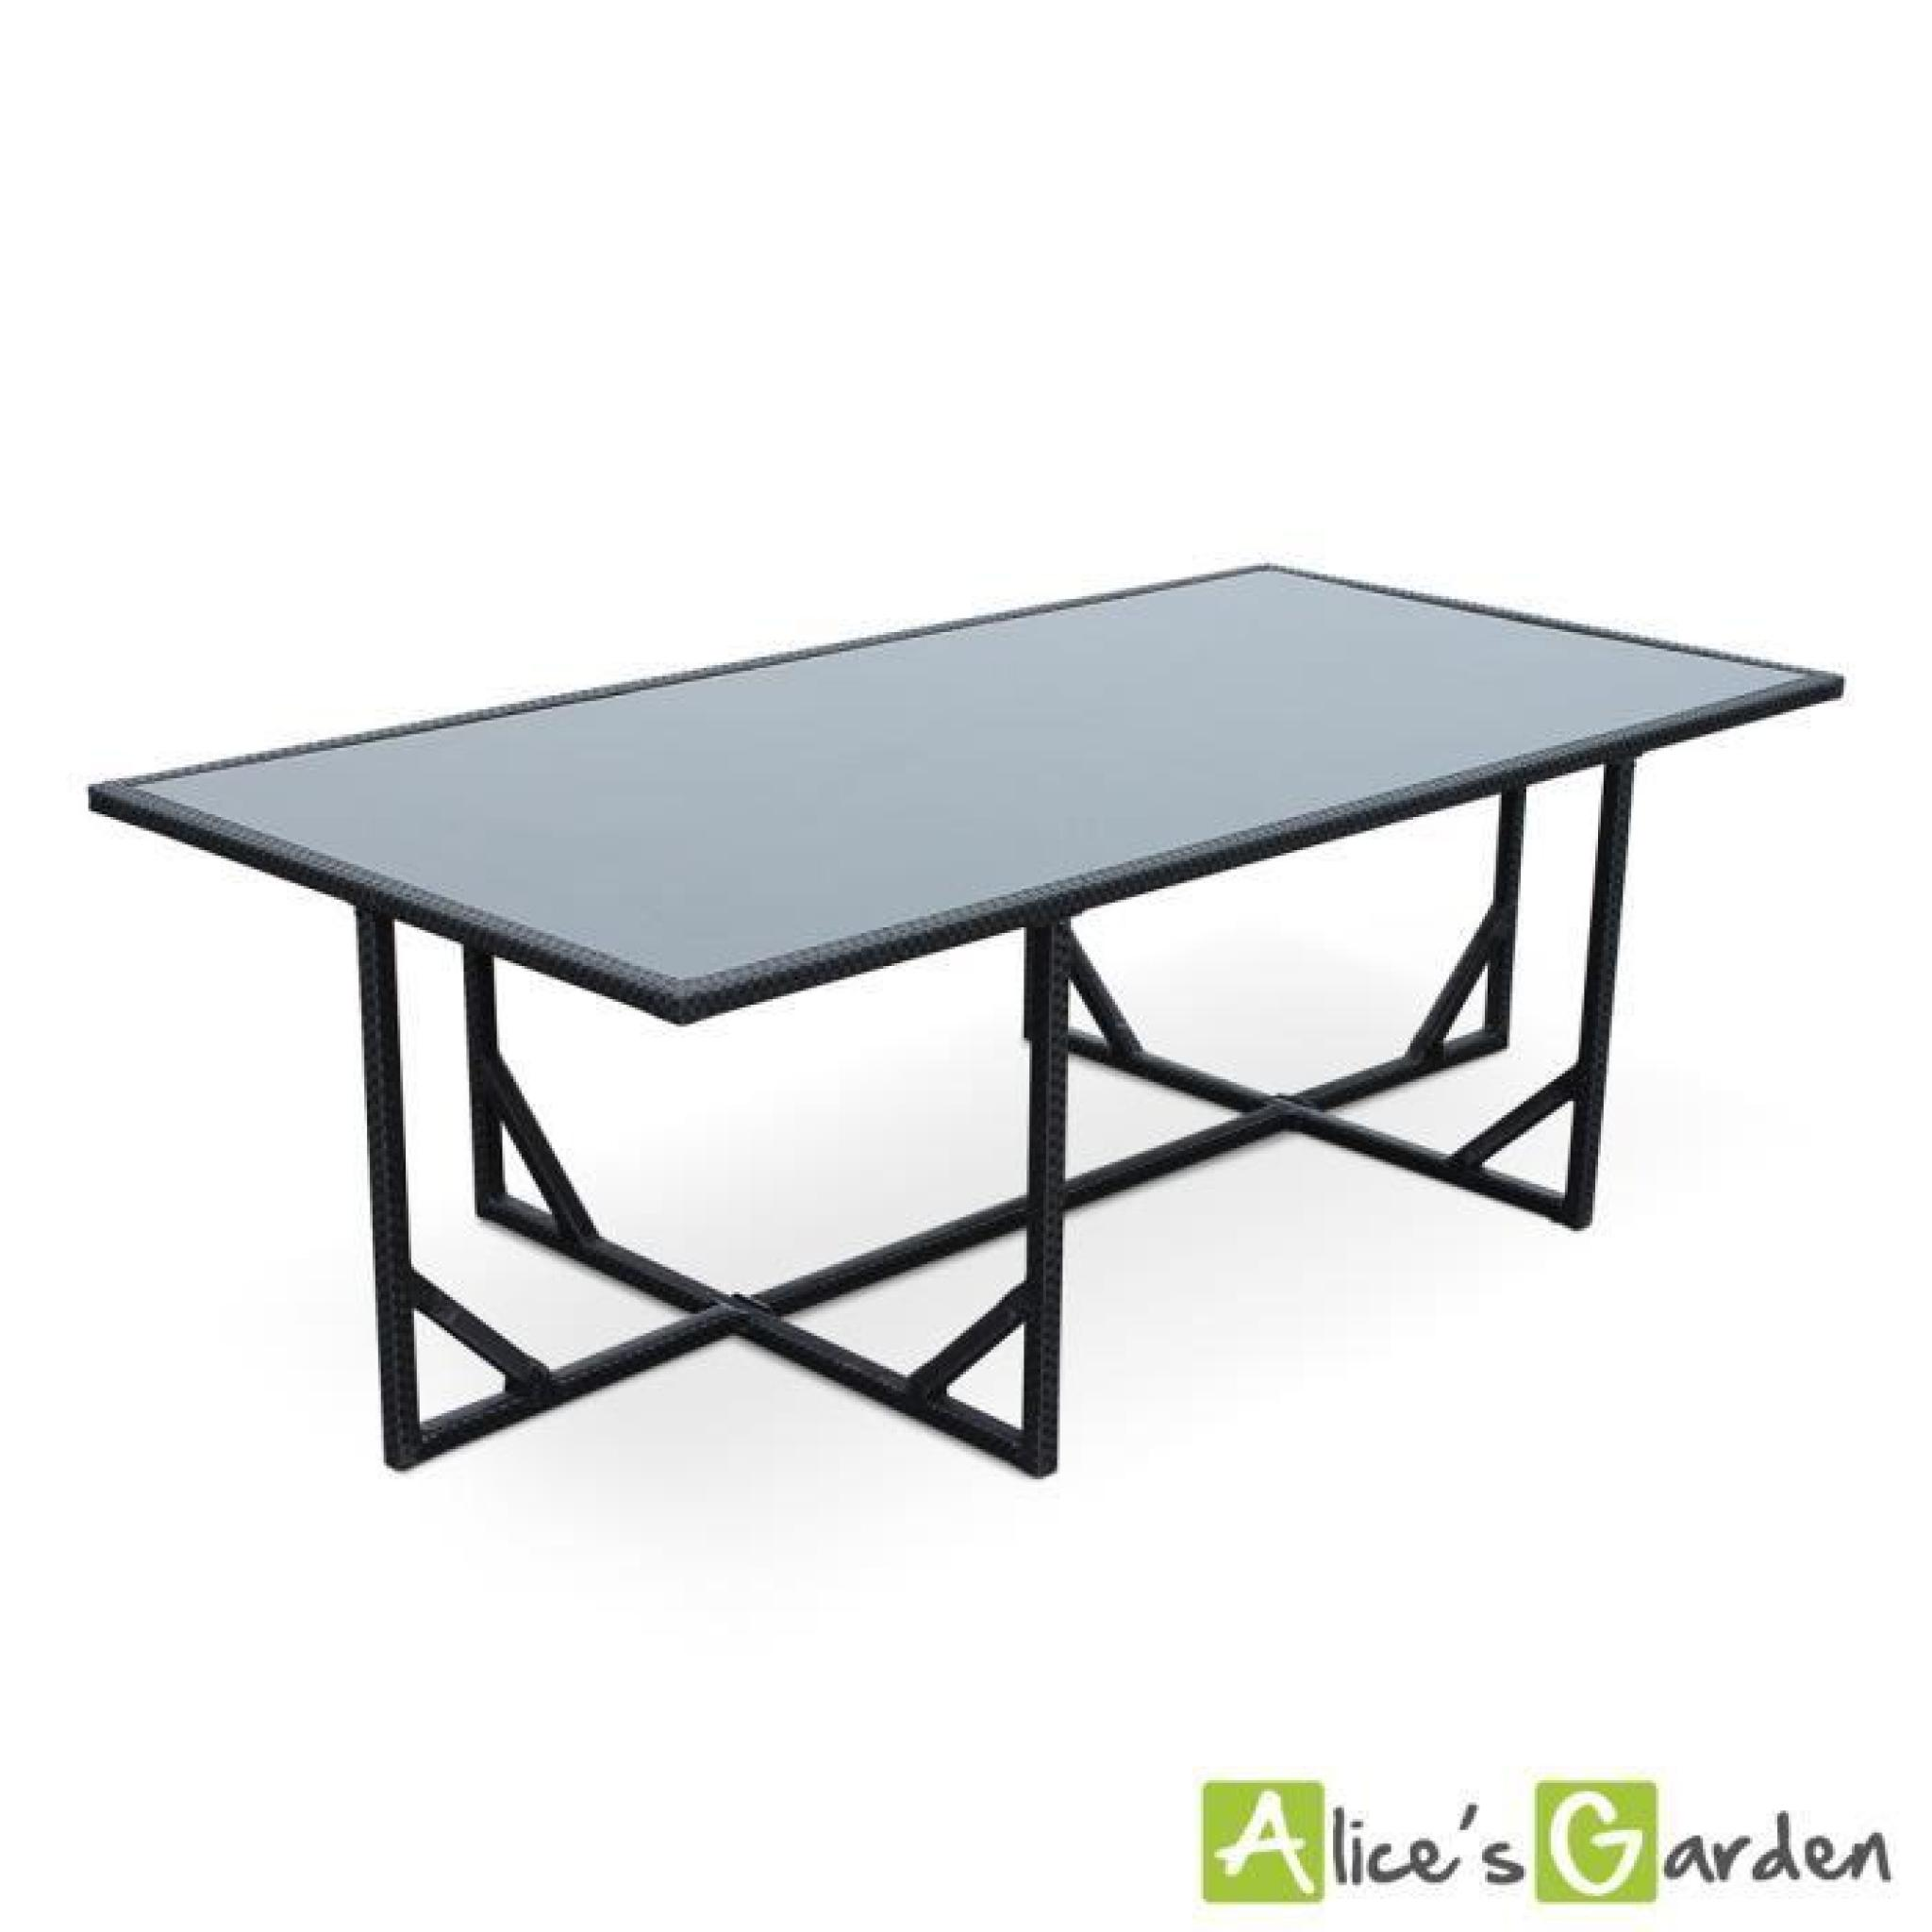 Salon de jardin vasto noir table en r sine tress e 8 12 for Table exterieur 12 places